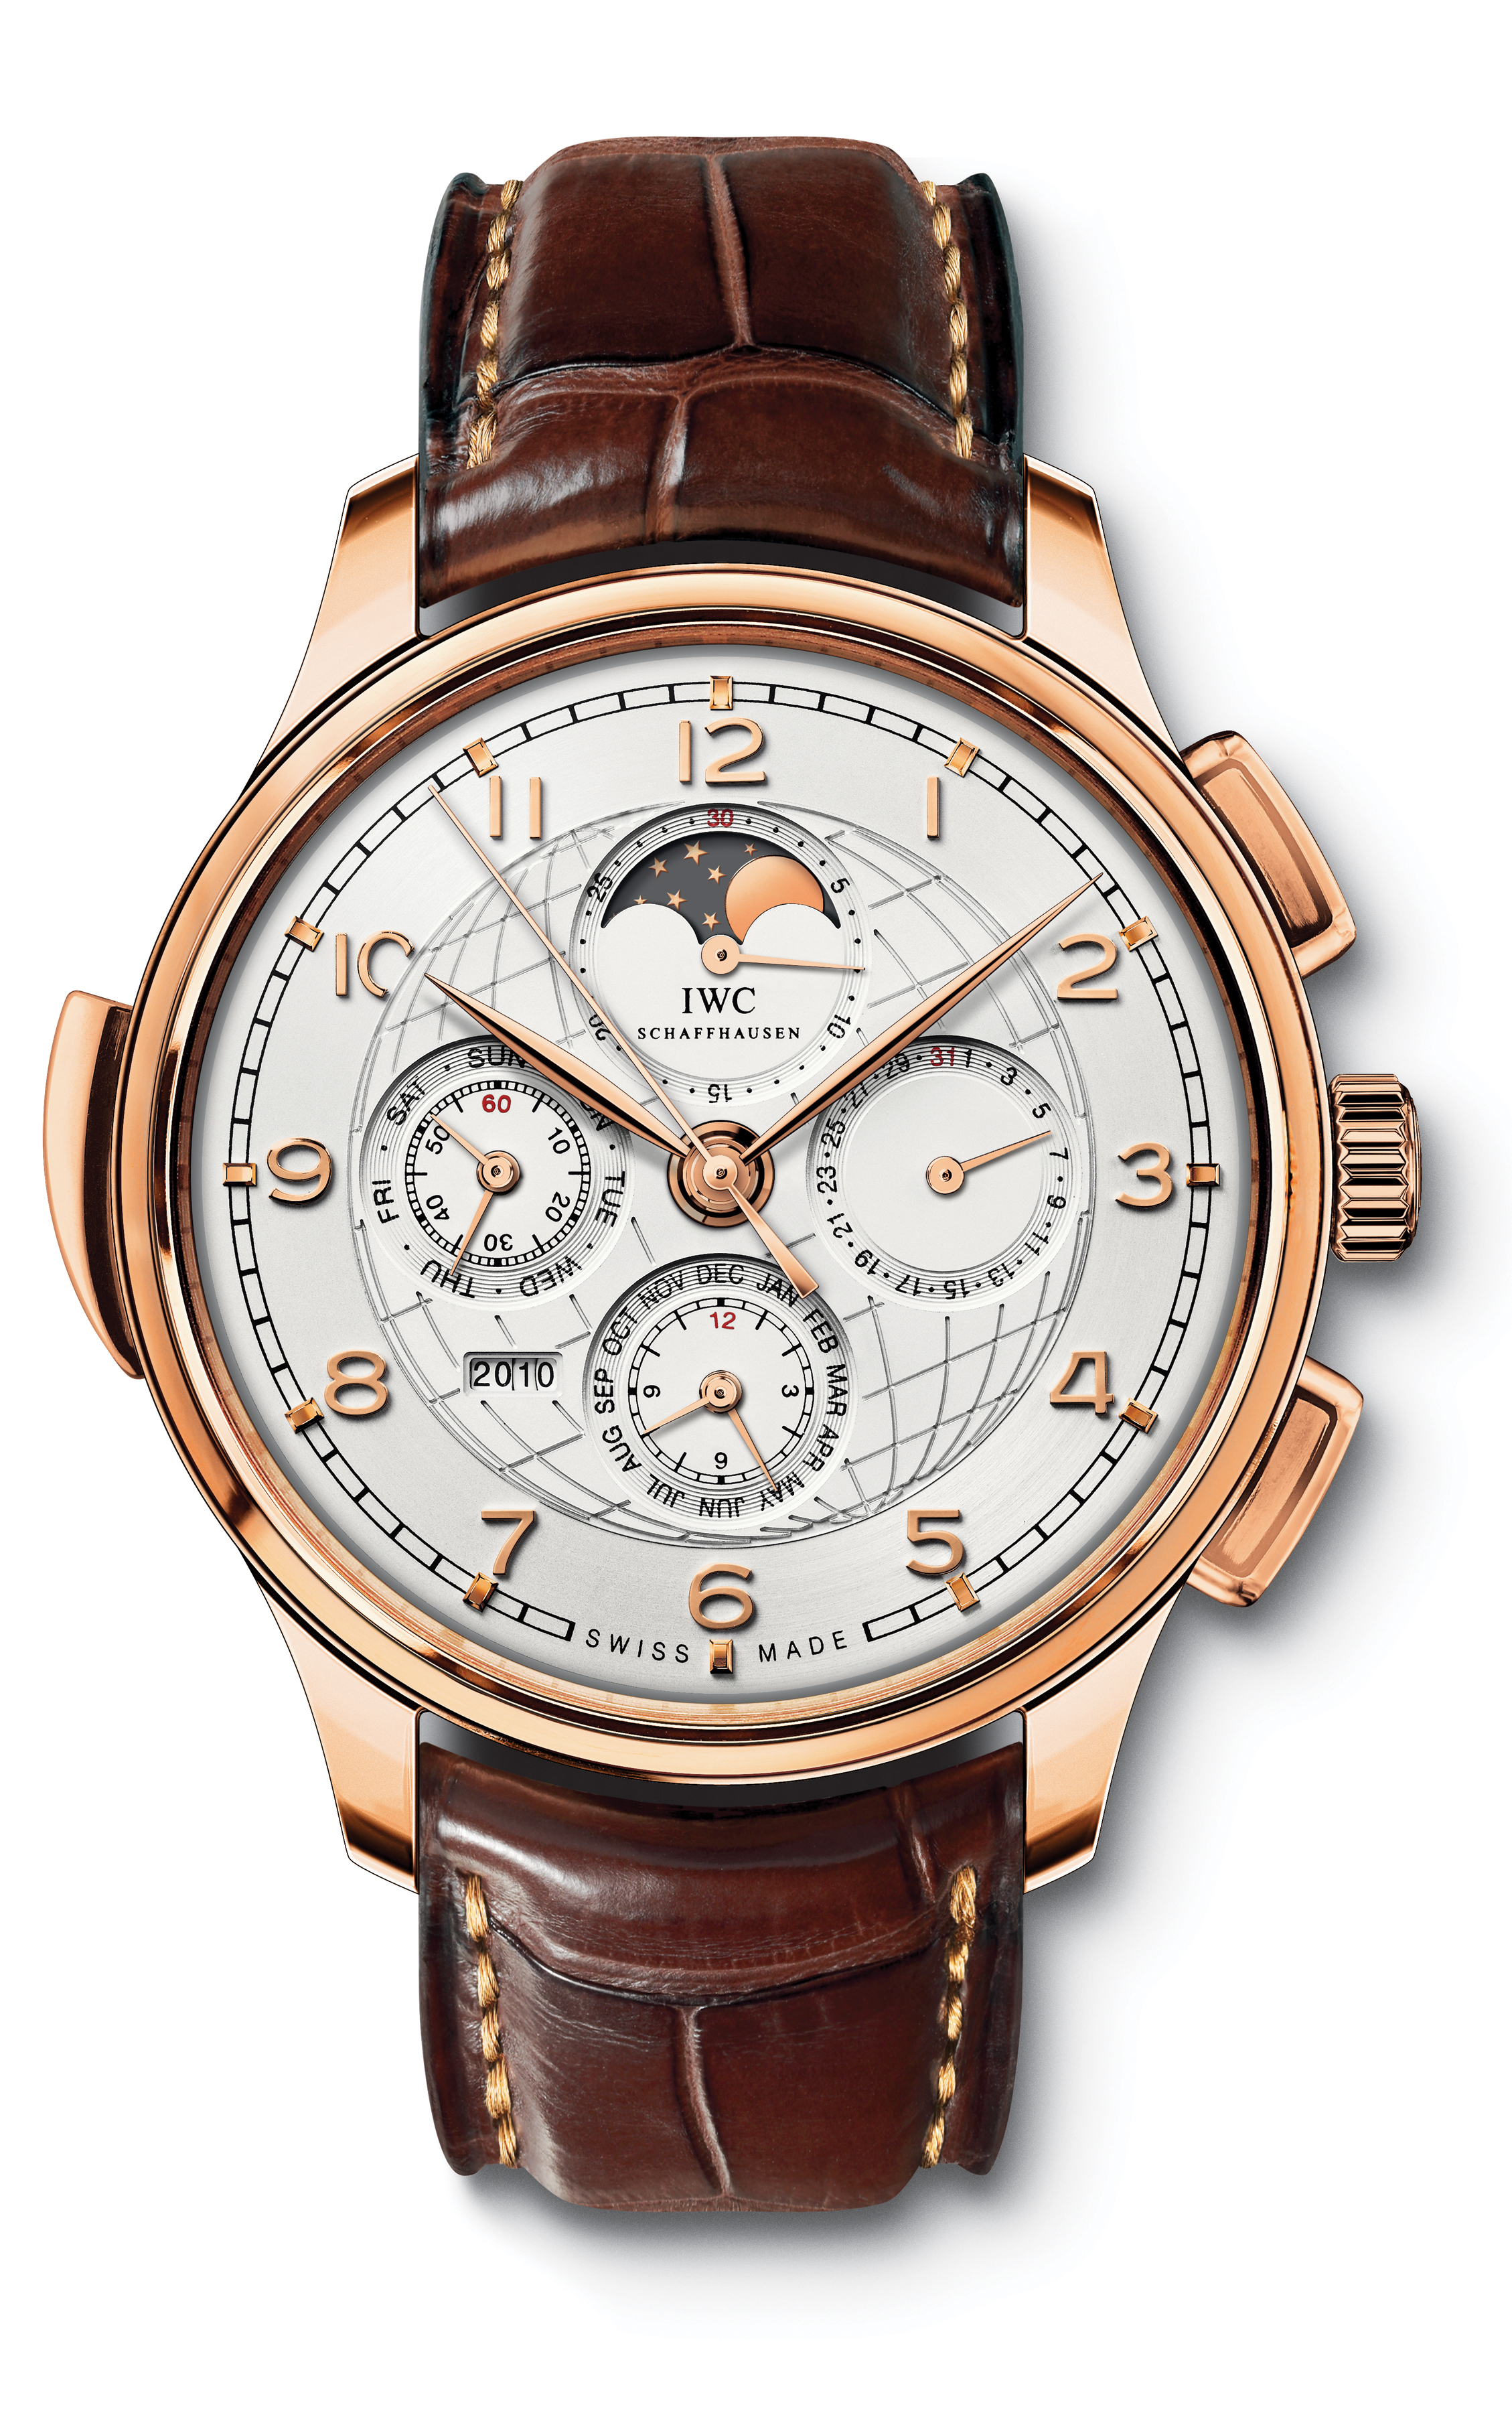 IWC Grand Complication